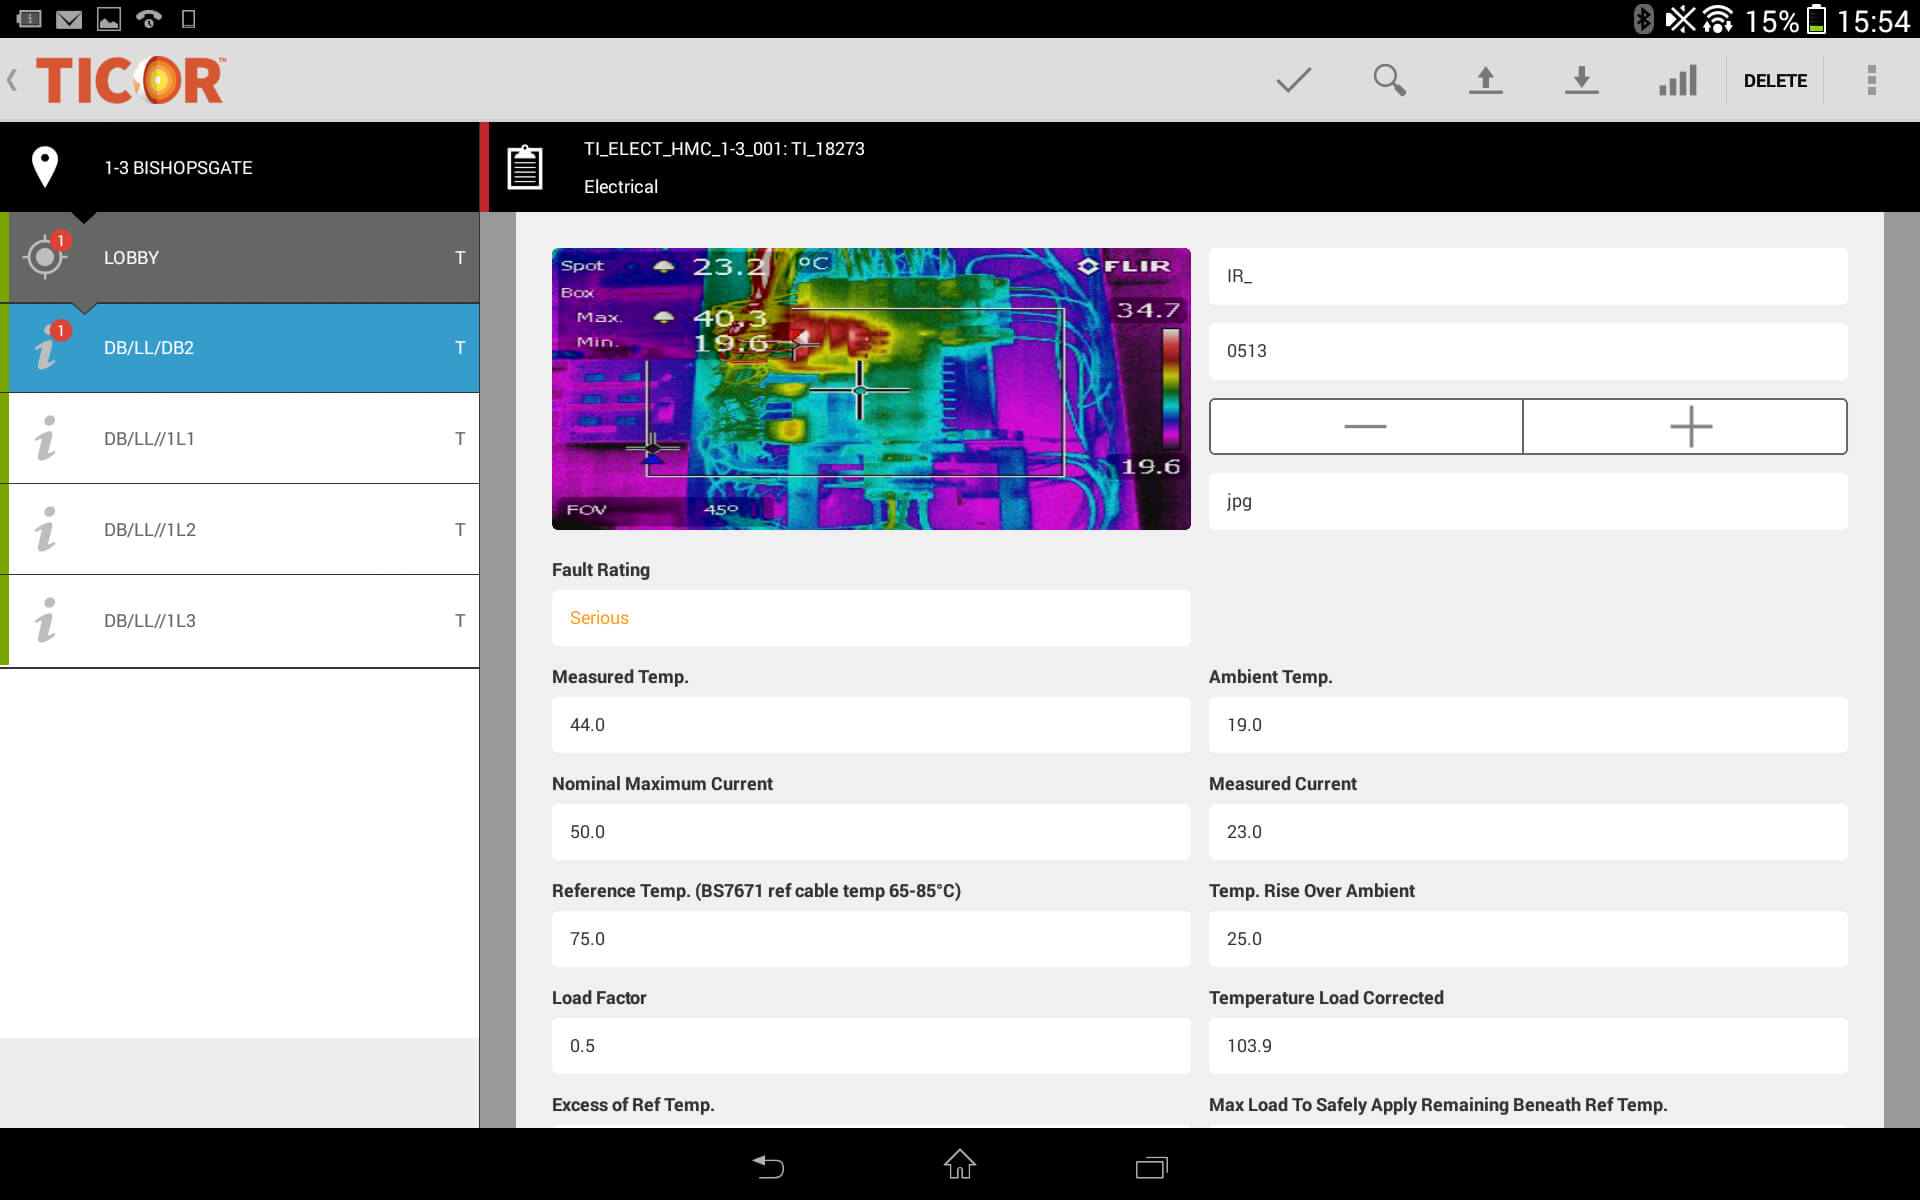 Thermal Imaging Software - Ticor Throughout Thermal Imaging Report Template